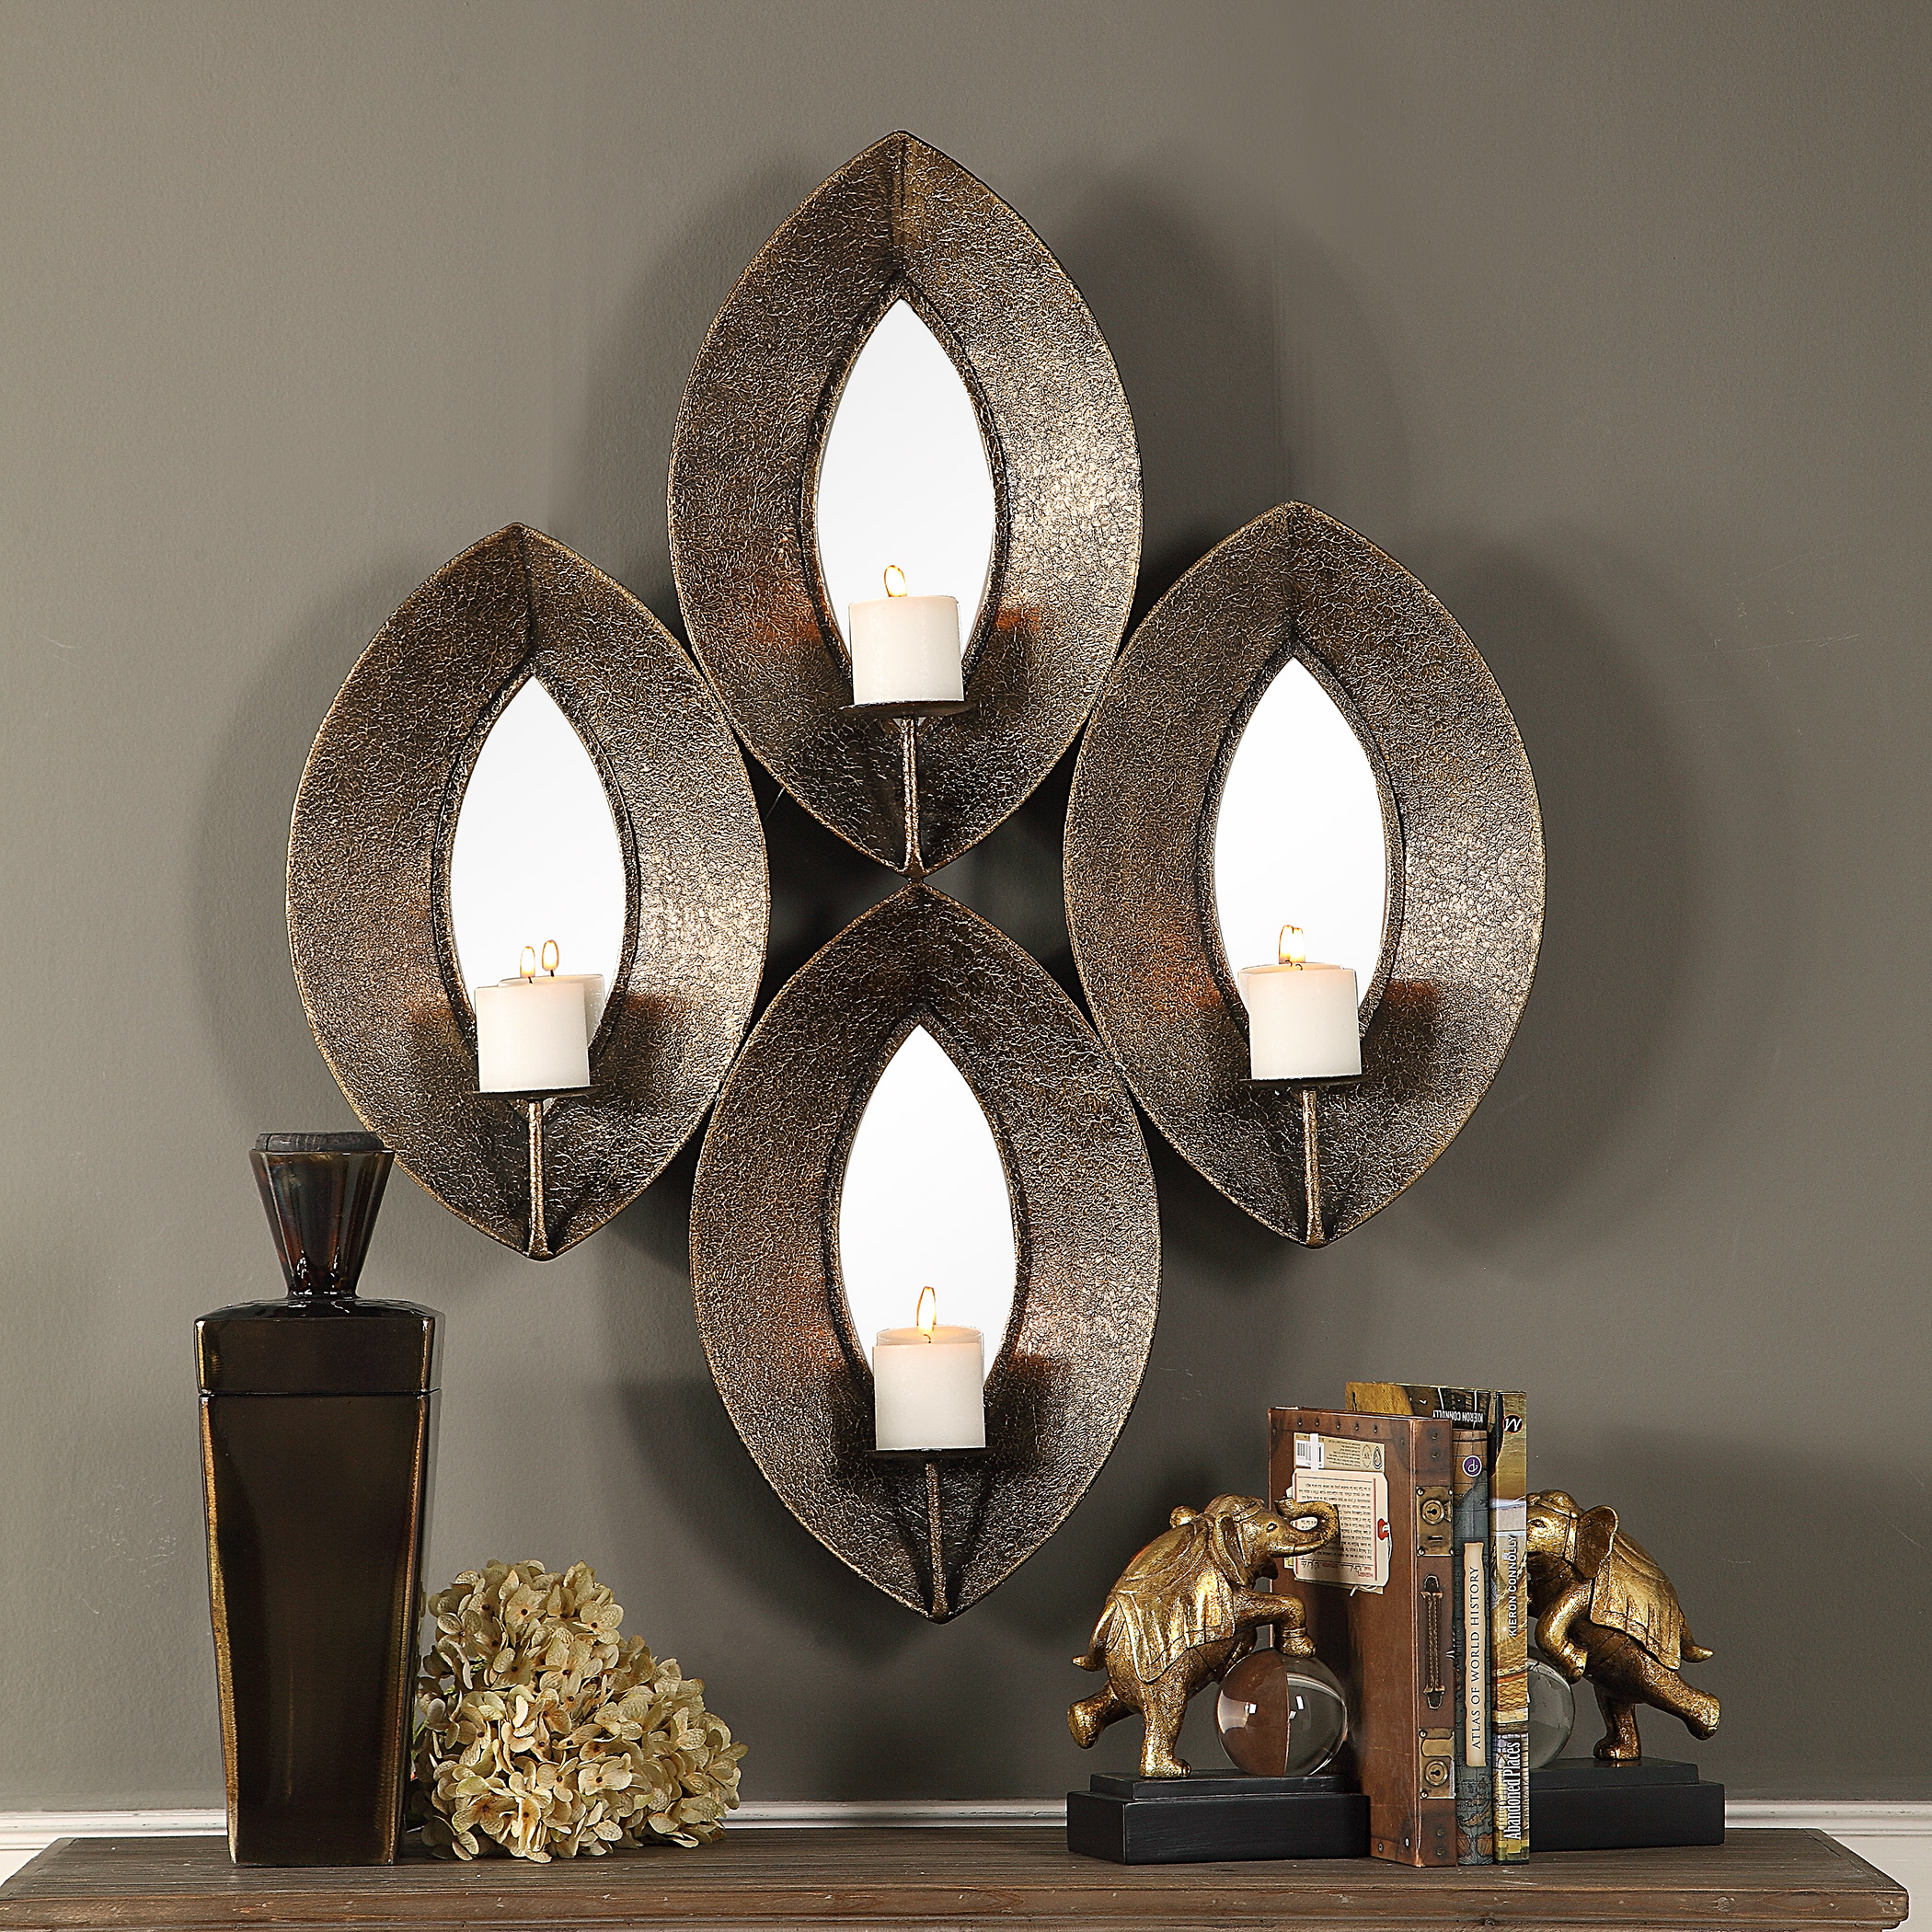 Elegant Bronze Ovals Mirrored Wall Candle Sconce | Multi 4 ...